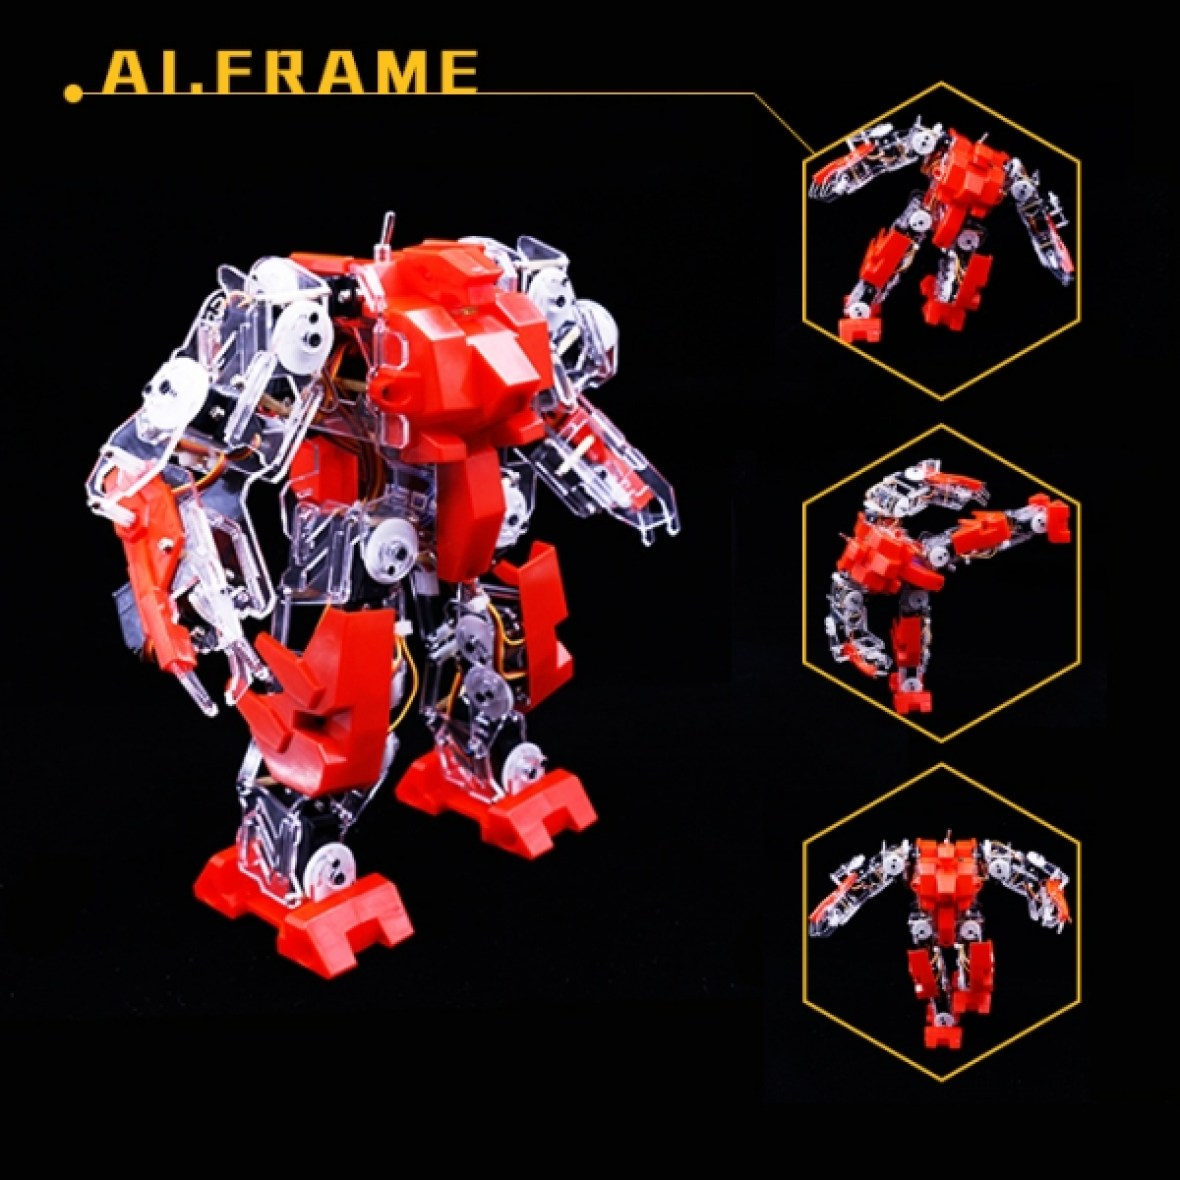 Does everything I'd want a bot to do. And with a 300$ price tag, I think I'll build my own ;)